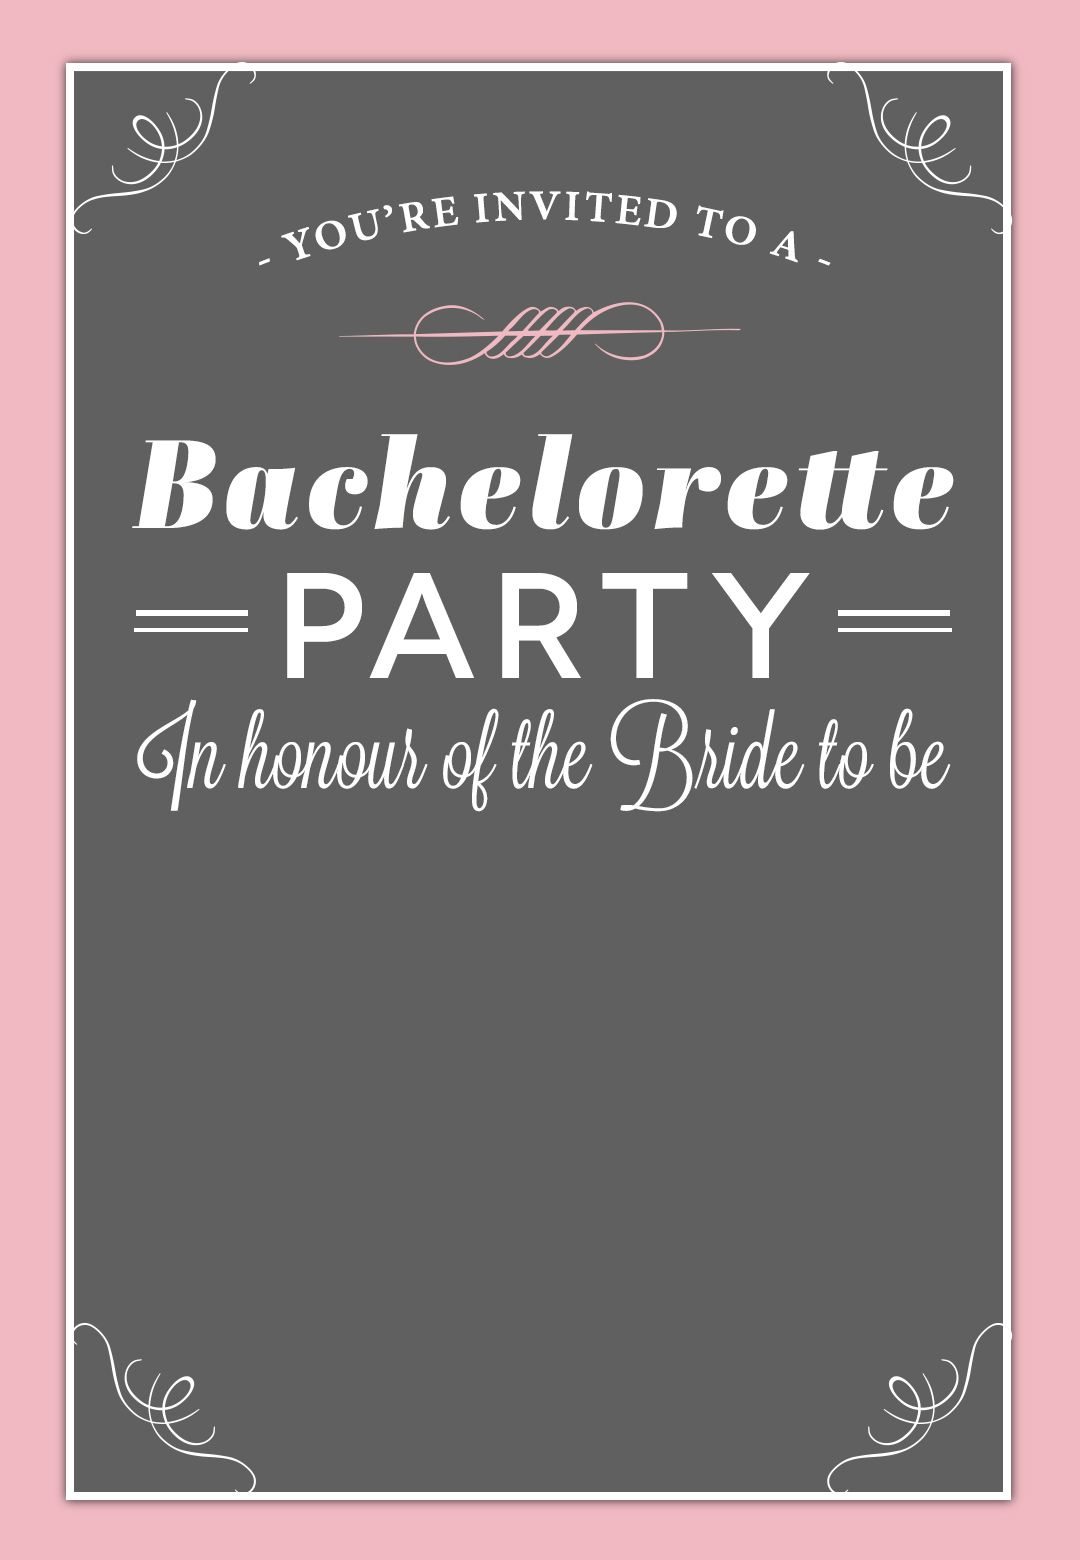 image regarding Free Printable Bachelorette Party Invitations known as Bachelorette Celebration #Invitation - Free of charge Printable No cost